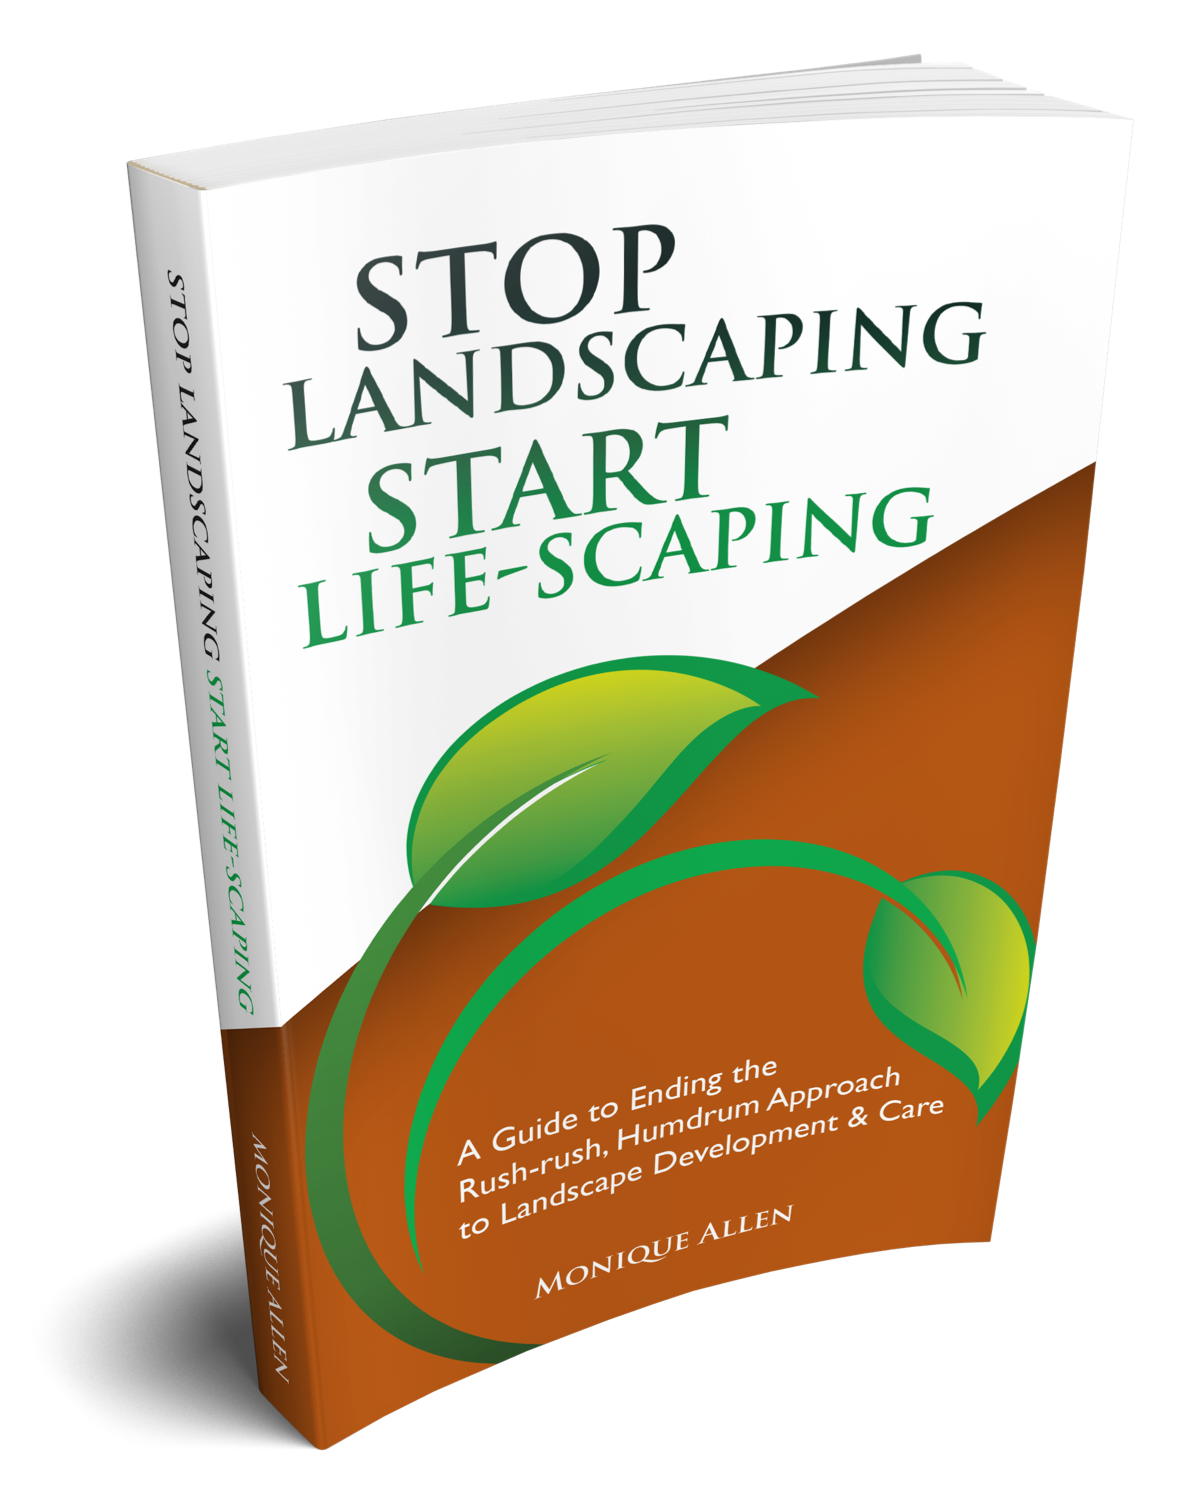 stop-landscaping-start-lifescaping